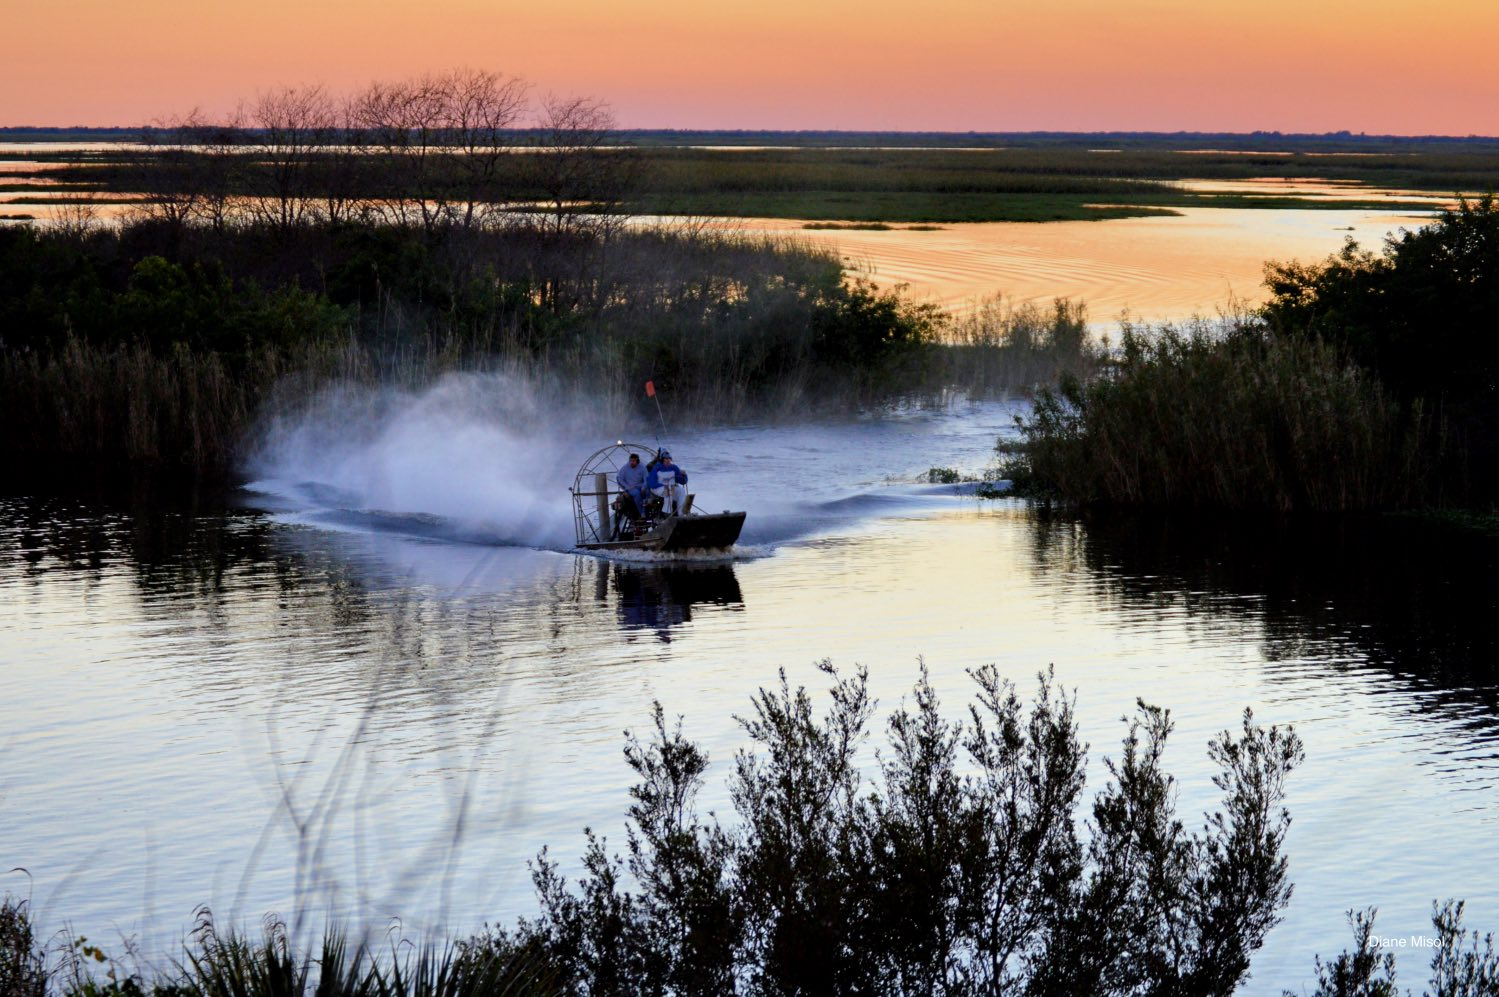 Airboat Cruising Lake Okeechobee at sunset